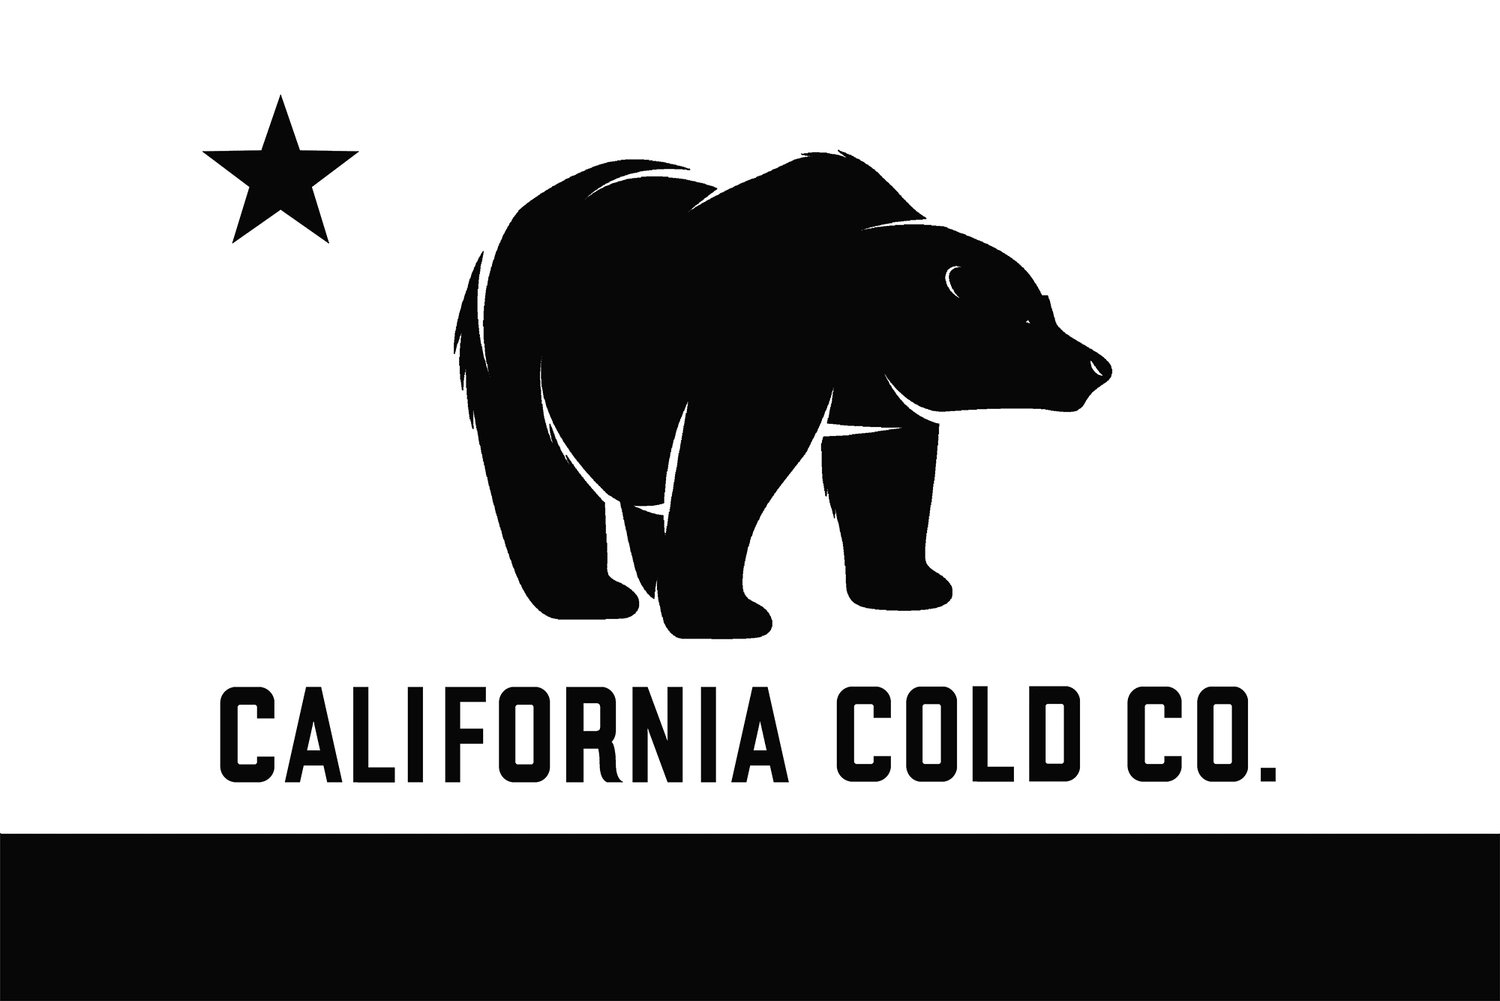 California Cold Co.